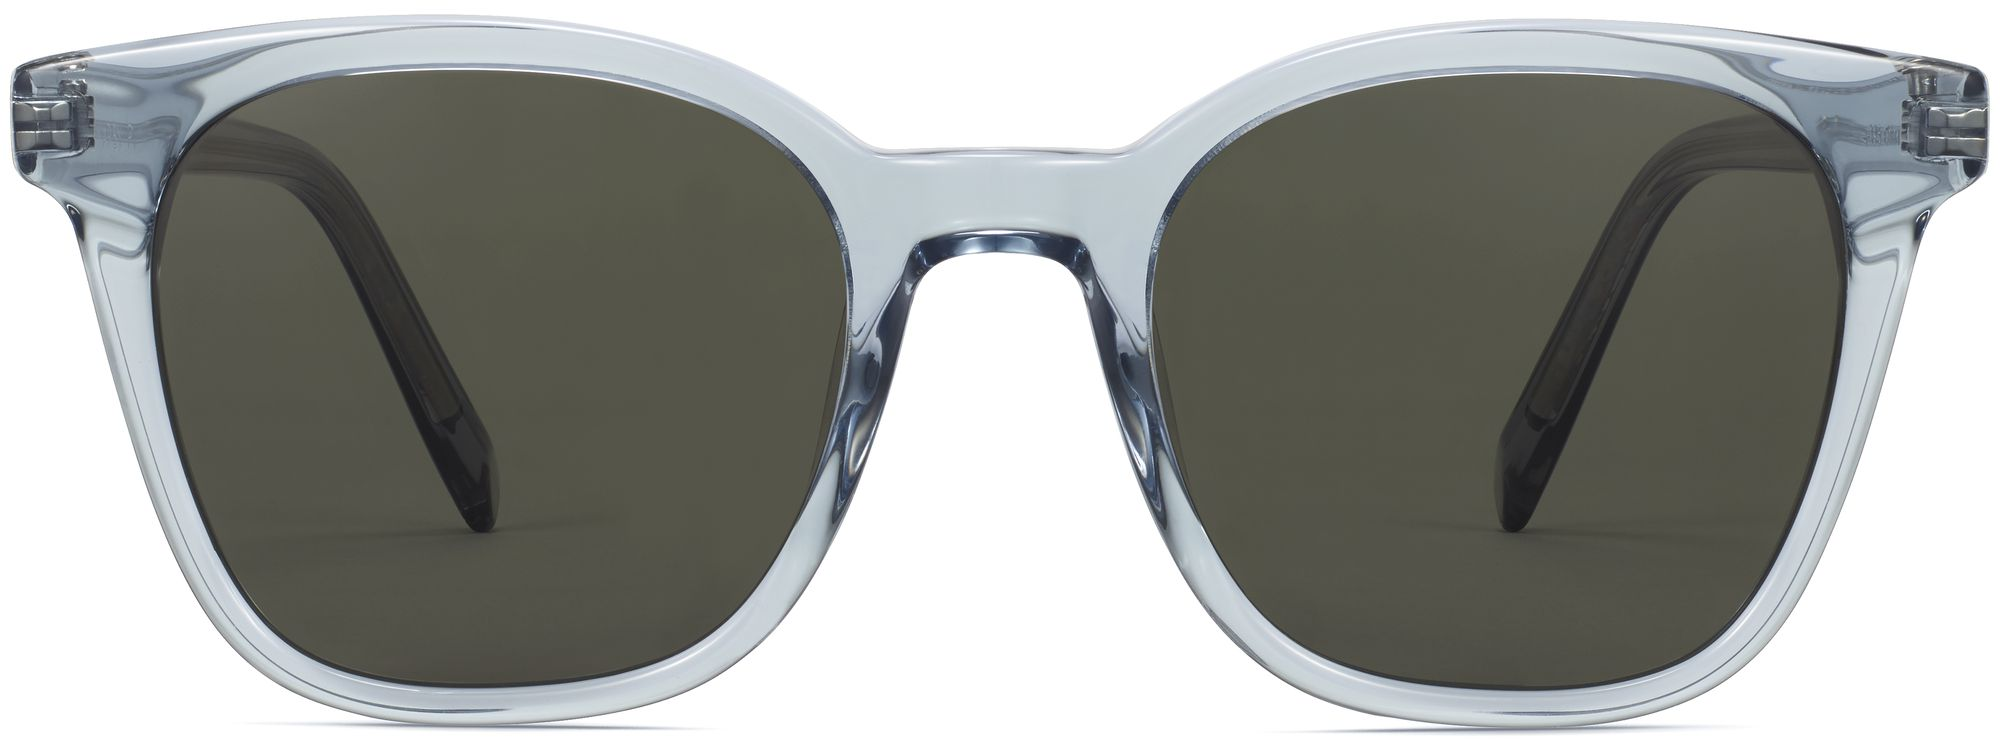 Front View Image of Griffin Sunglasses Collection, by Warby Parker Brand, in Pacific Crystal Color